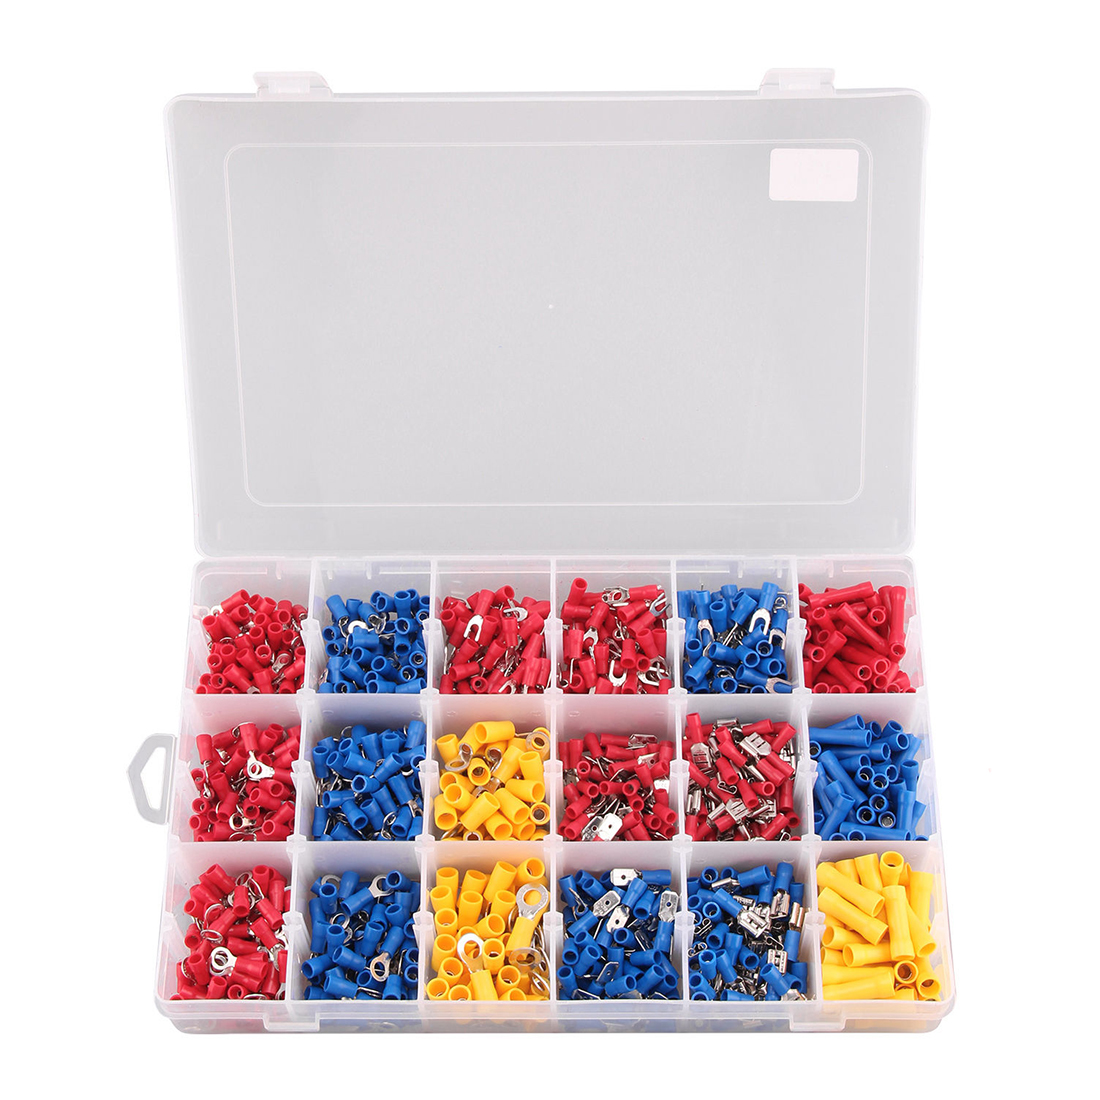 1200 X Assorted Insulated Electrical Wire Terminal Crimp Connector Spade Set Box 1200 pcs mixed assorted lug kit insulated electrical wire connector crimp terminal spade ring set clh